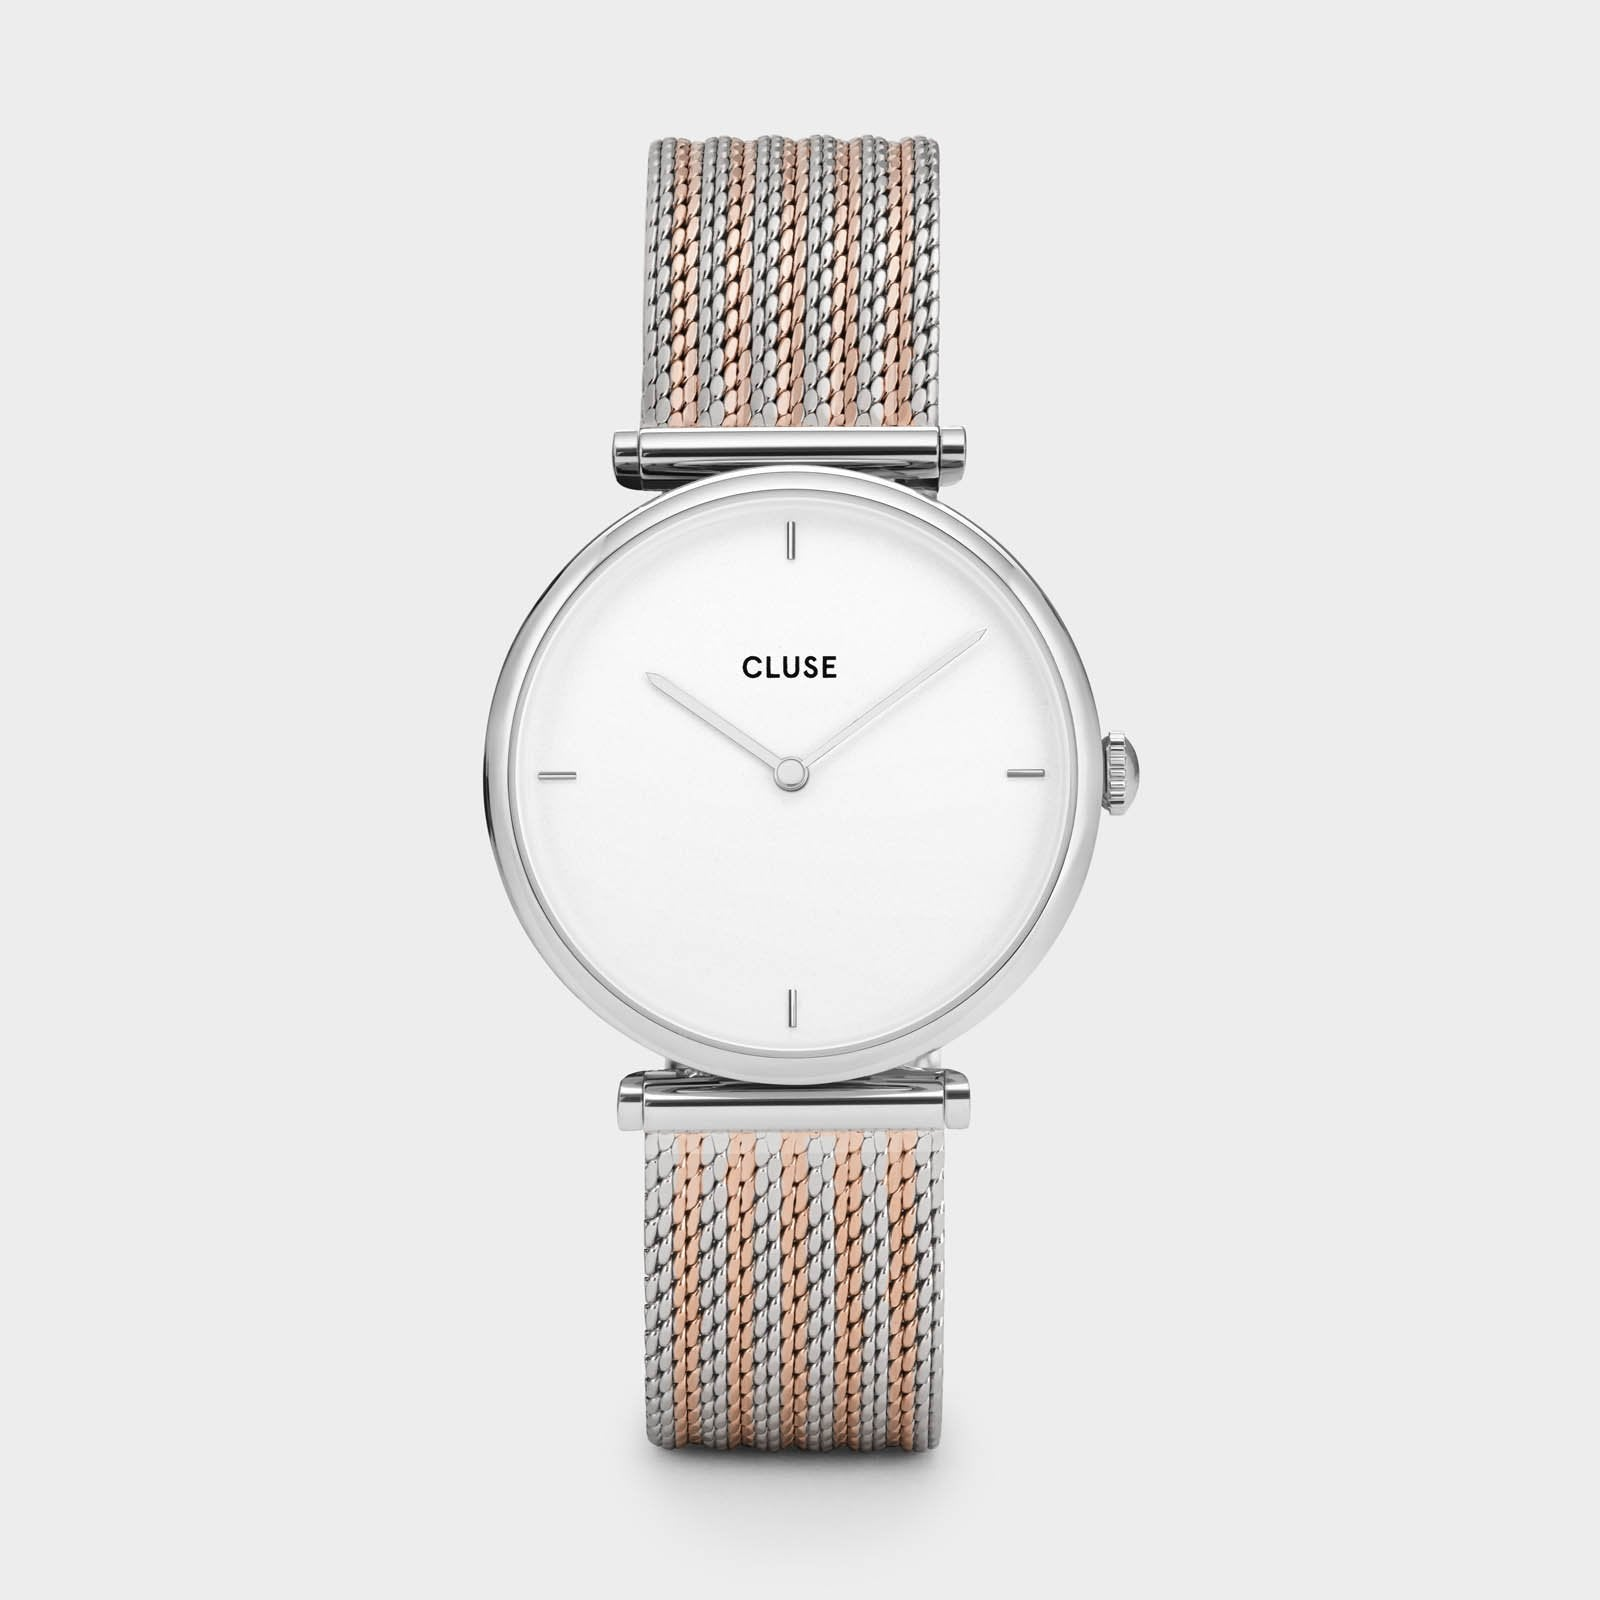 CLUSE Triomphe Silver Bicolour Mesh CL61001 - watch